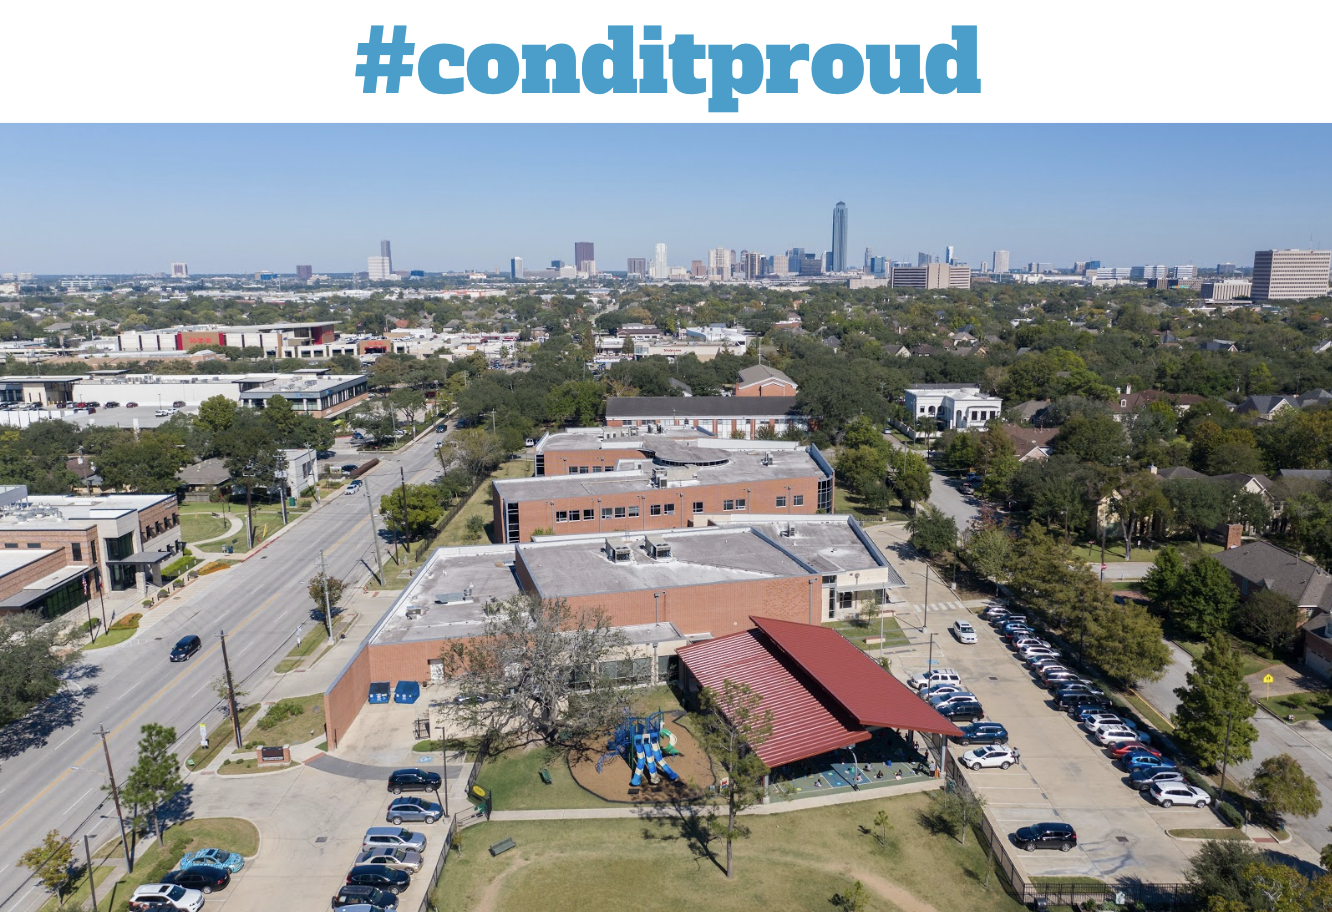 Condit aerial view